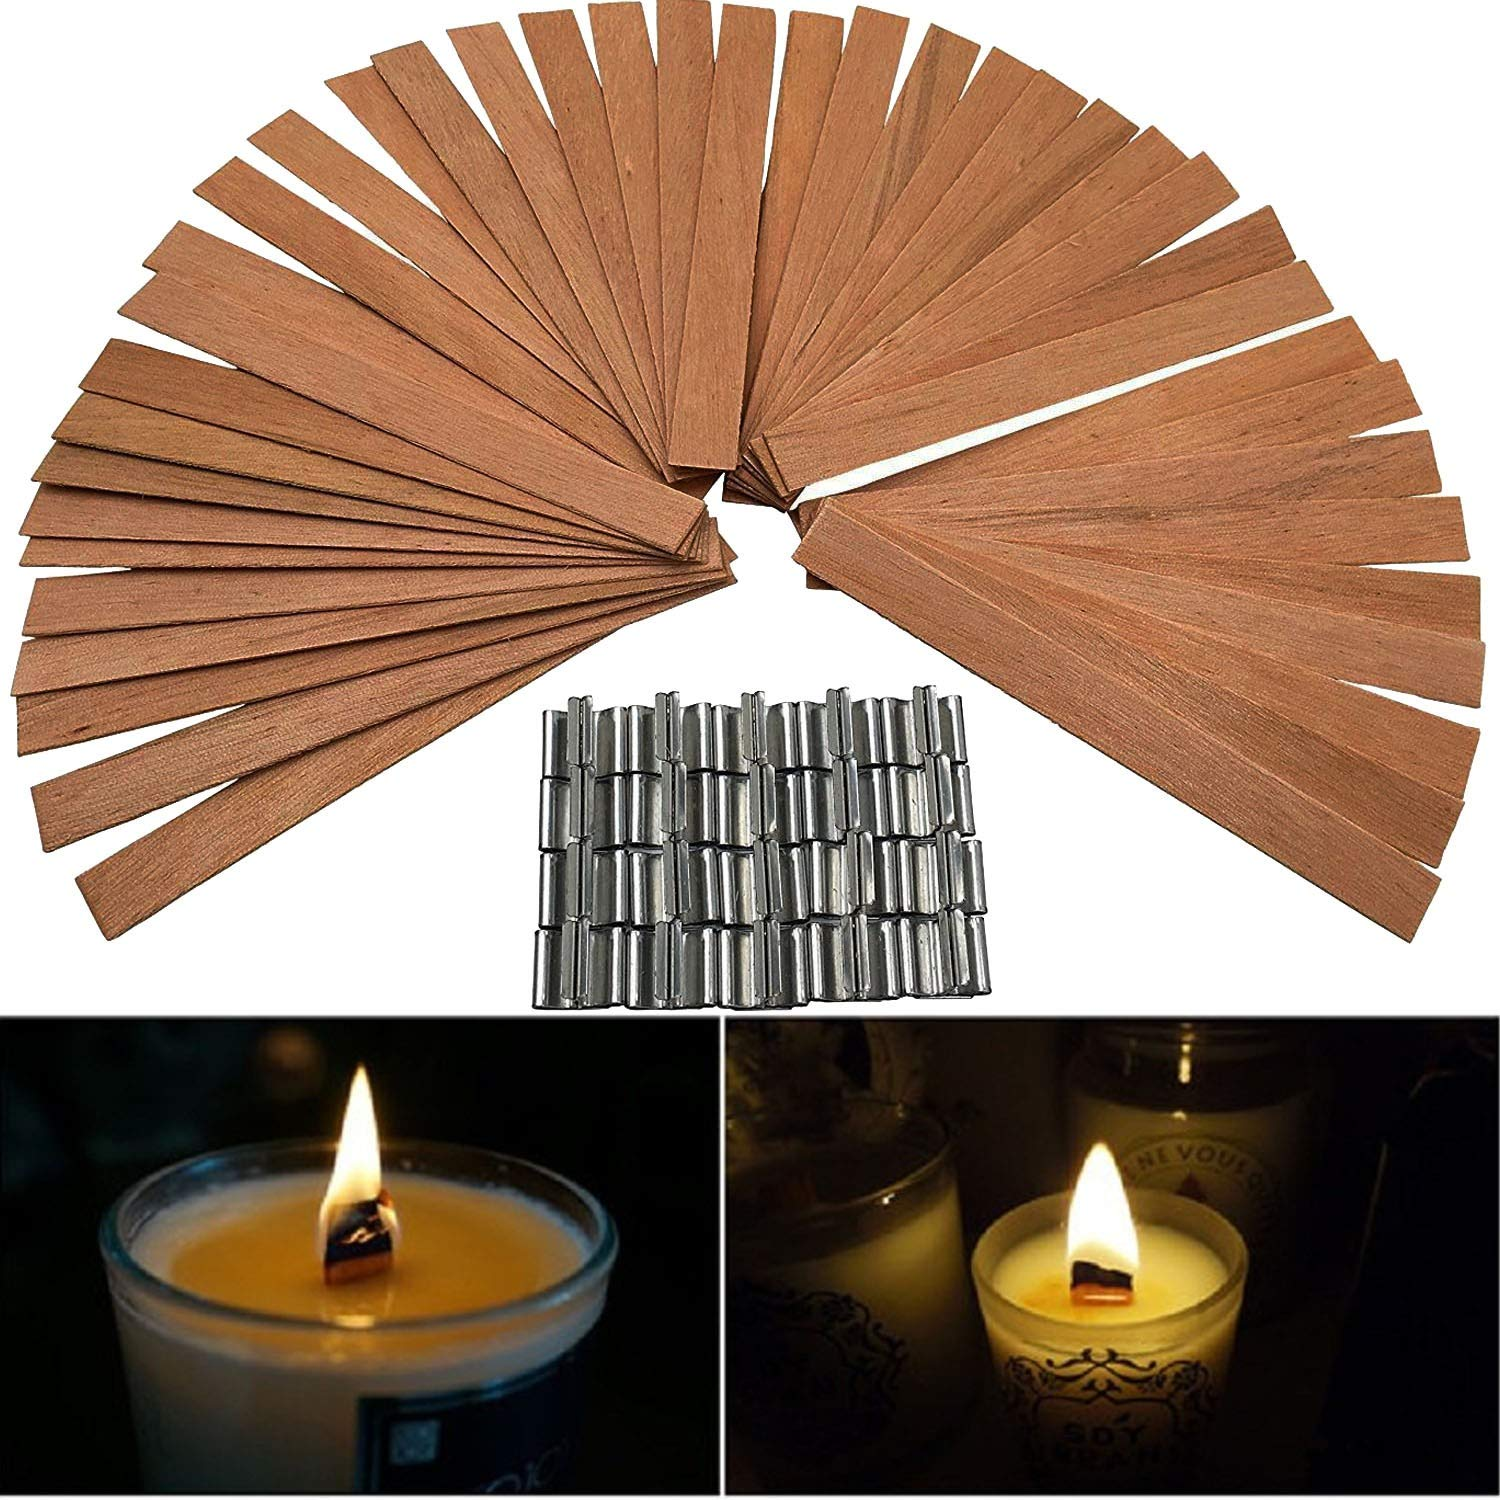 50 PCS 12.5 x 150mm Wood Candle Wicks with Sustainer Tab Supplies Velas Candele Wick for Candle DIY Making for Home Church Deco by Good Home (Image #1)